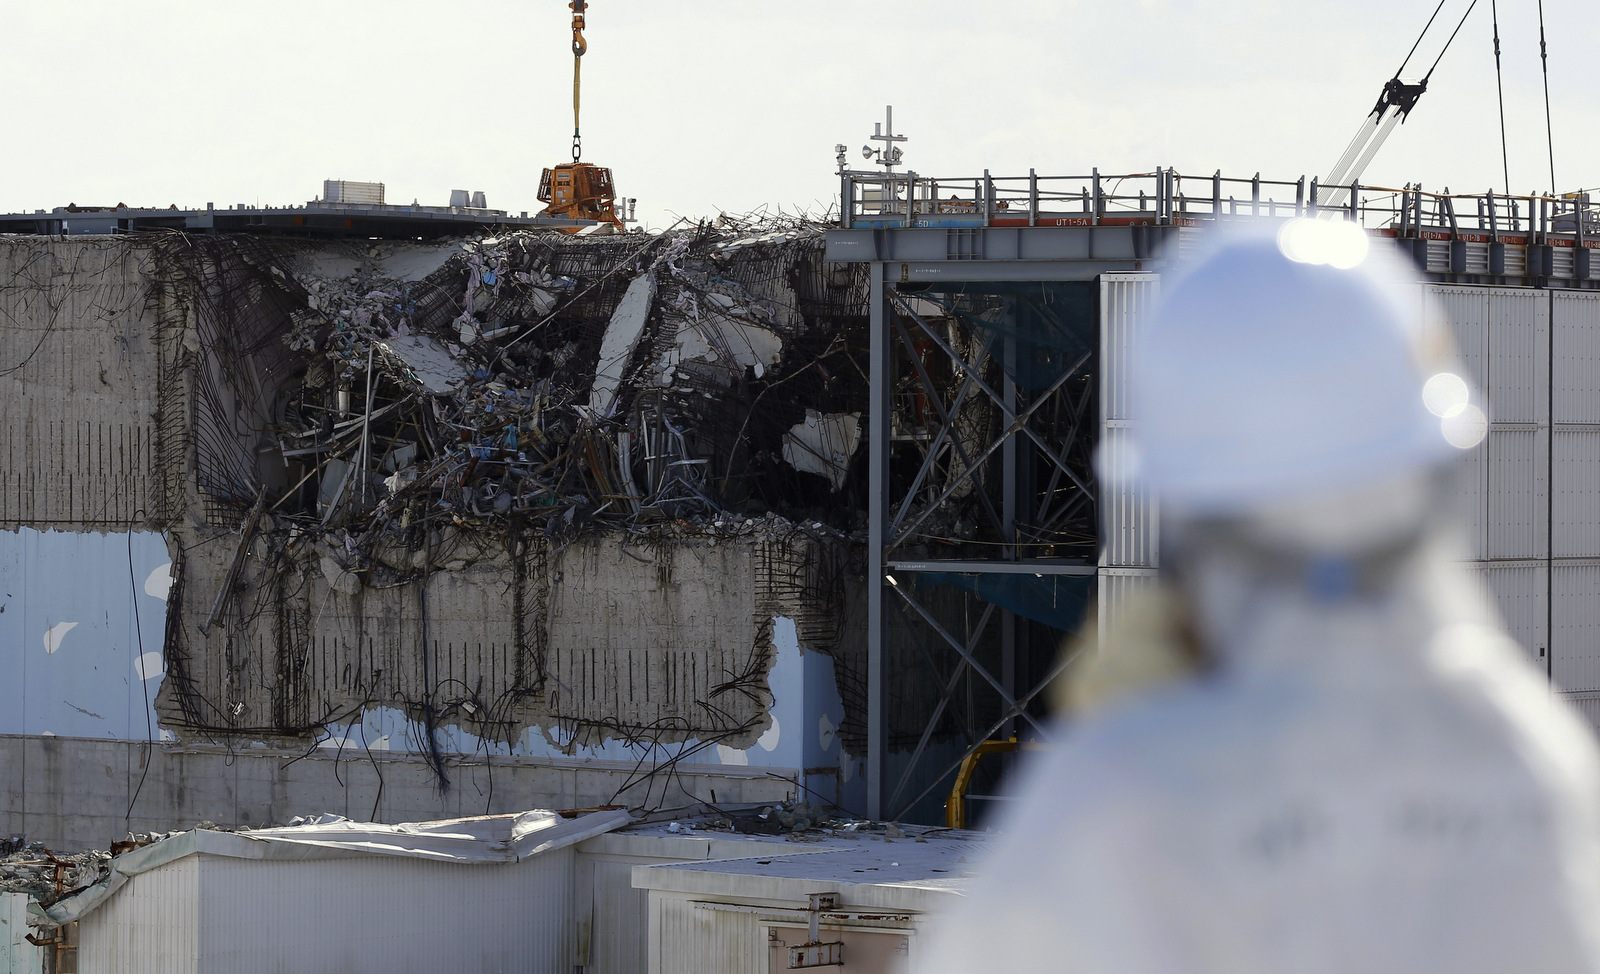 A member of the media tour group wearing a protective suit and a mask looks at the No. 3 reactor building at Tokyo Electric Power Co's (TEPCO) tsunami-crippled Fukushima Dai-ichi nuclear power plant in Okuma, Fukushima Prefecture, northeastern Japan, Wednesday, Feb. 10, 2016. (Toru Hanai/AP)